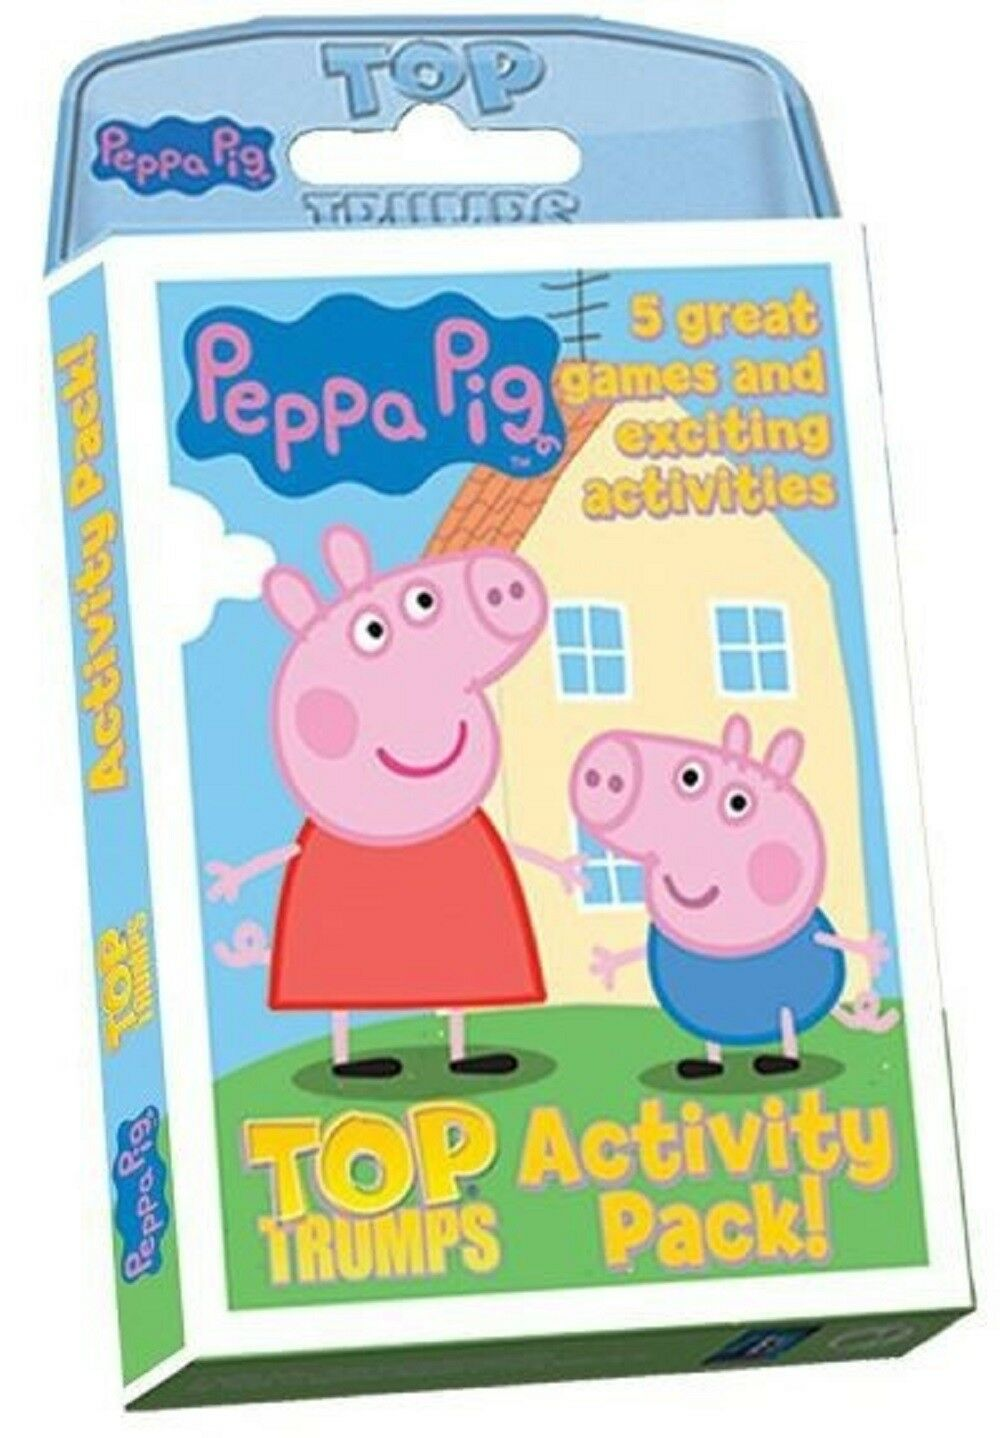 Peppa Pig Activity Pack - Australia only - Better Buy Now